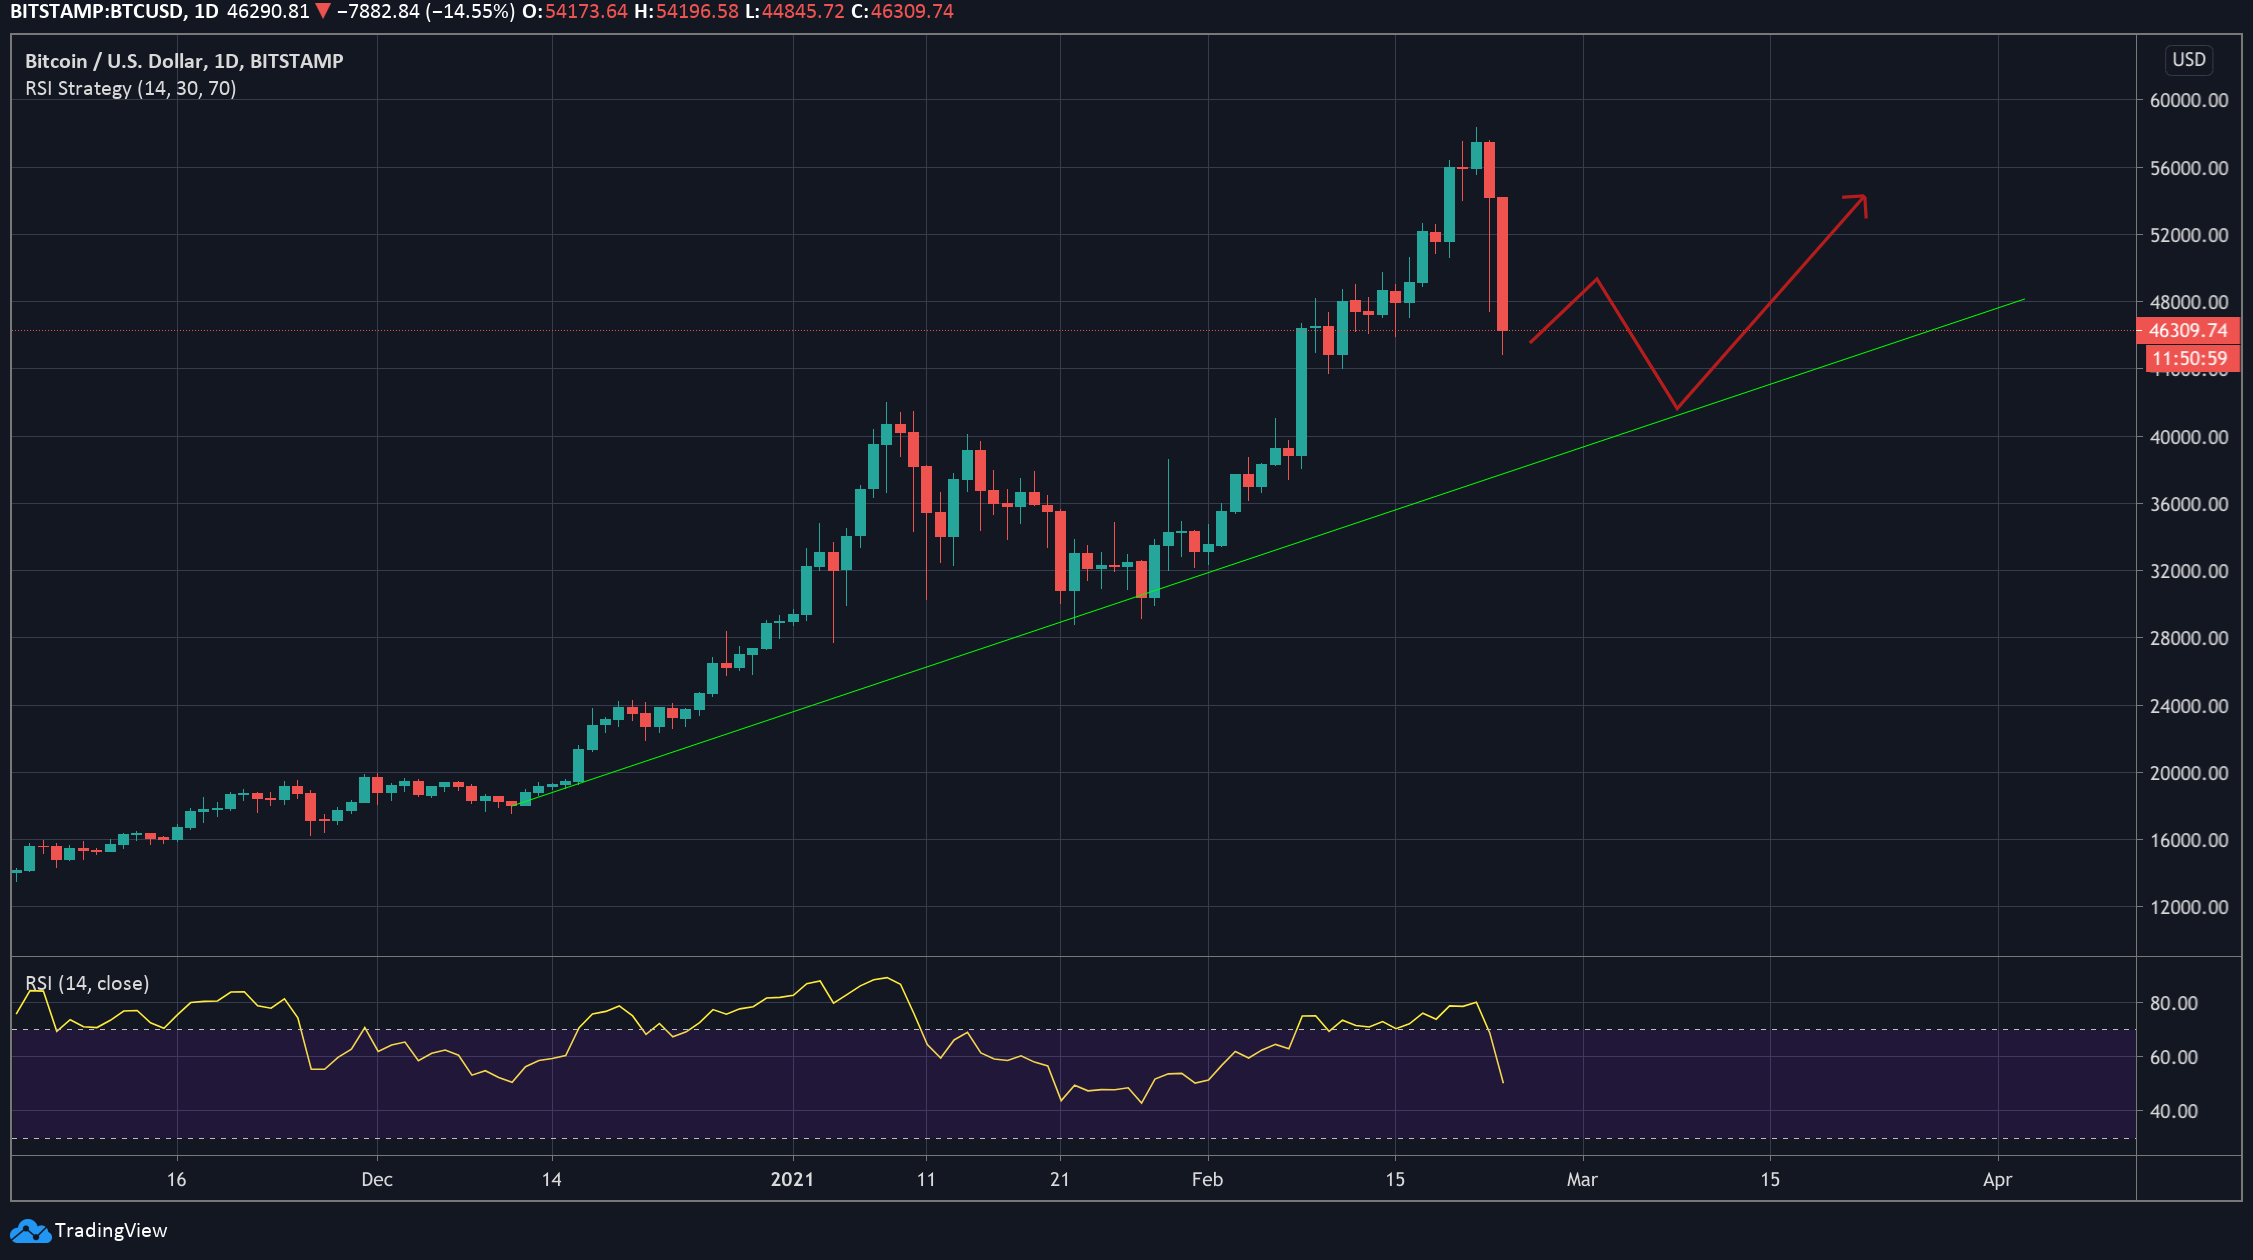 BTC/USD 1-Day chart showing a normal retracement to the uptrend line